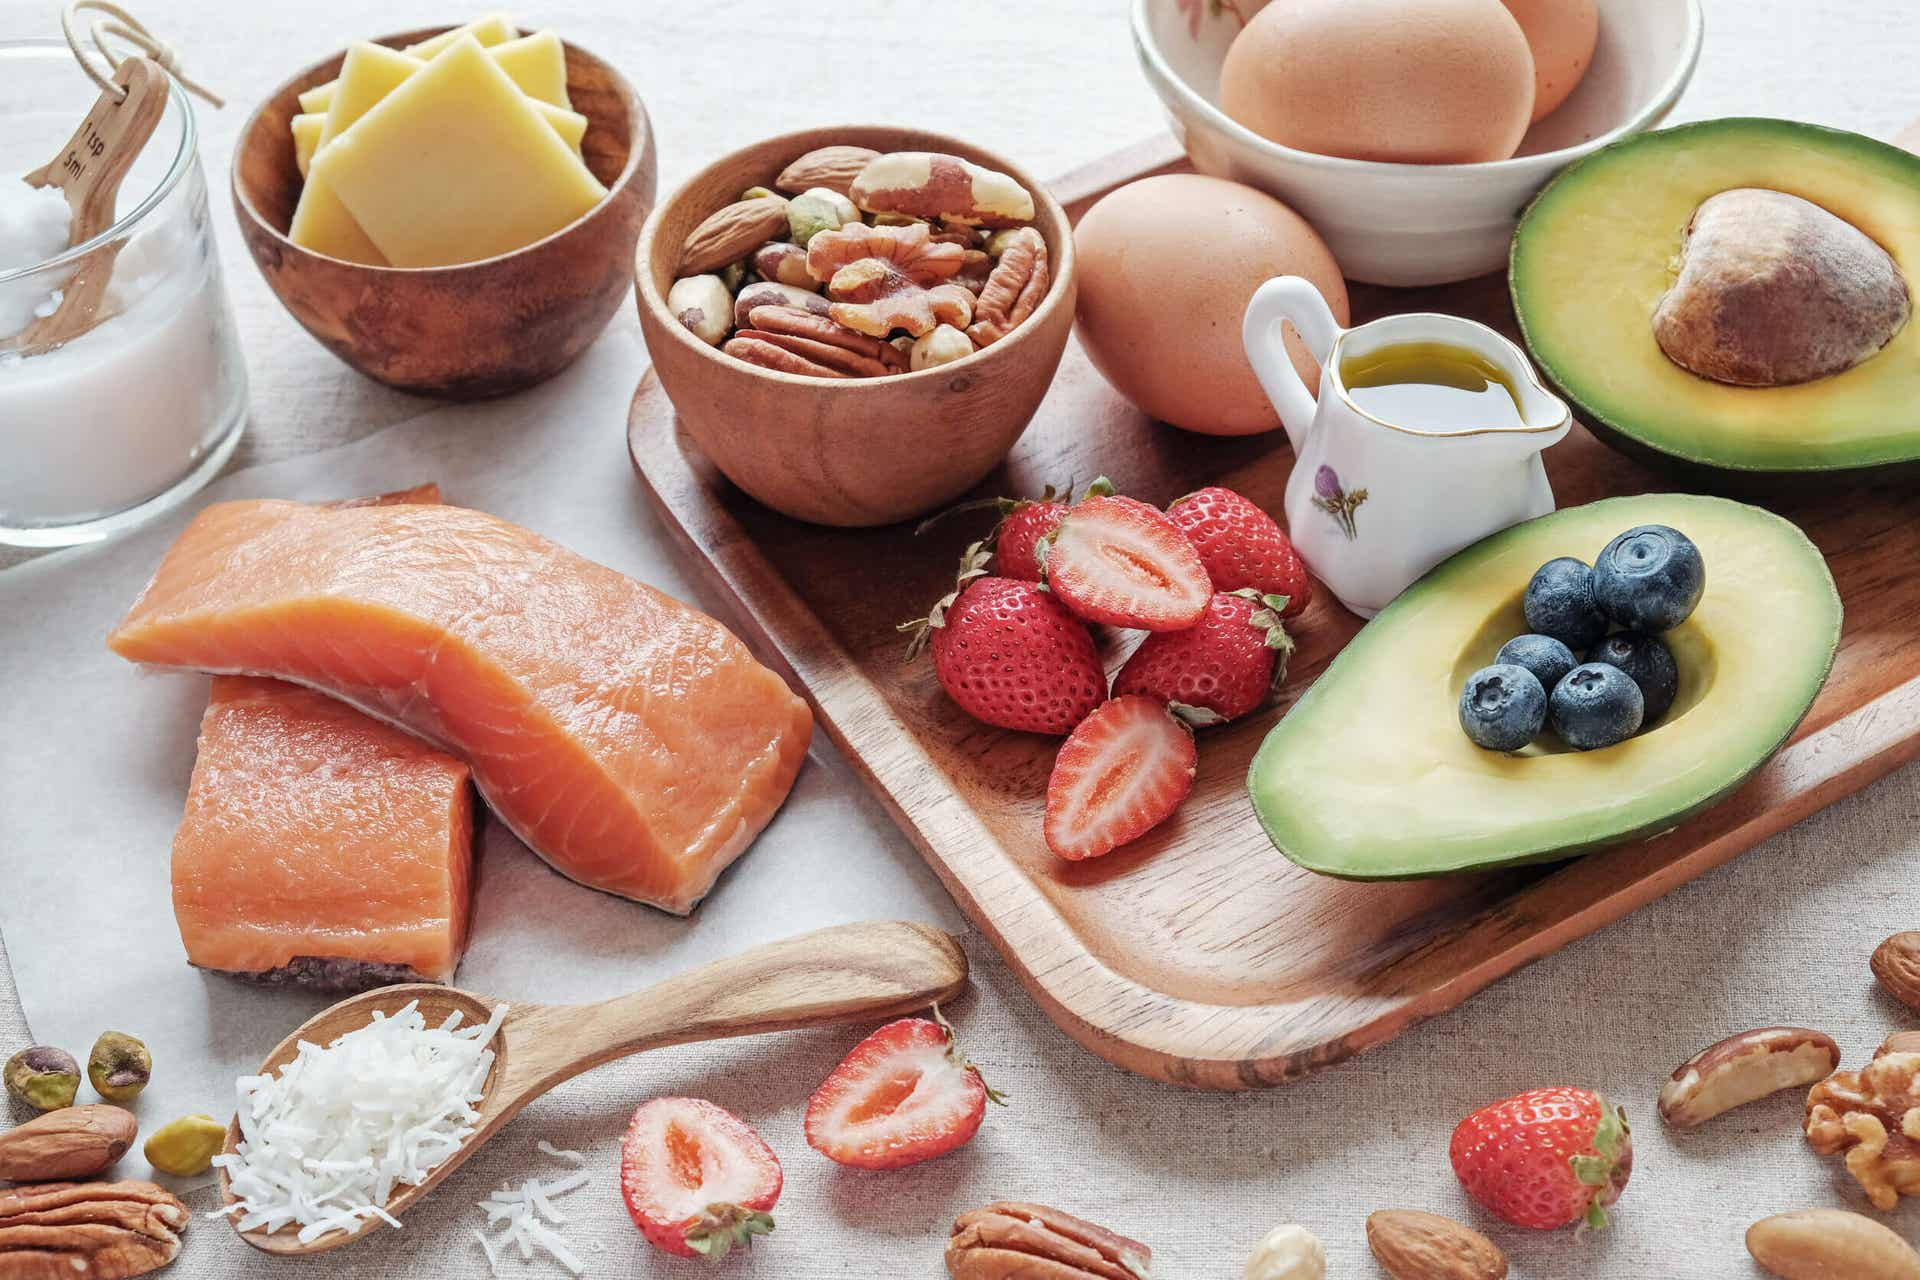 Salmon, nuts, eggs, cheese, berries, and avocado.